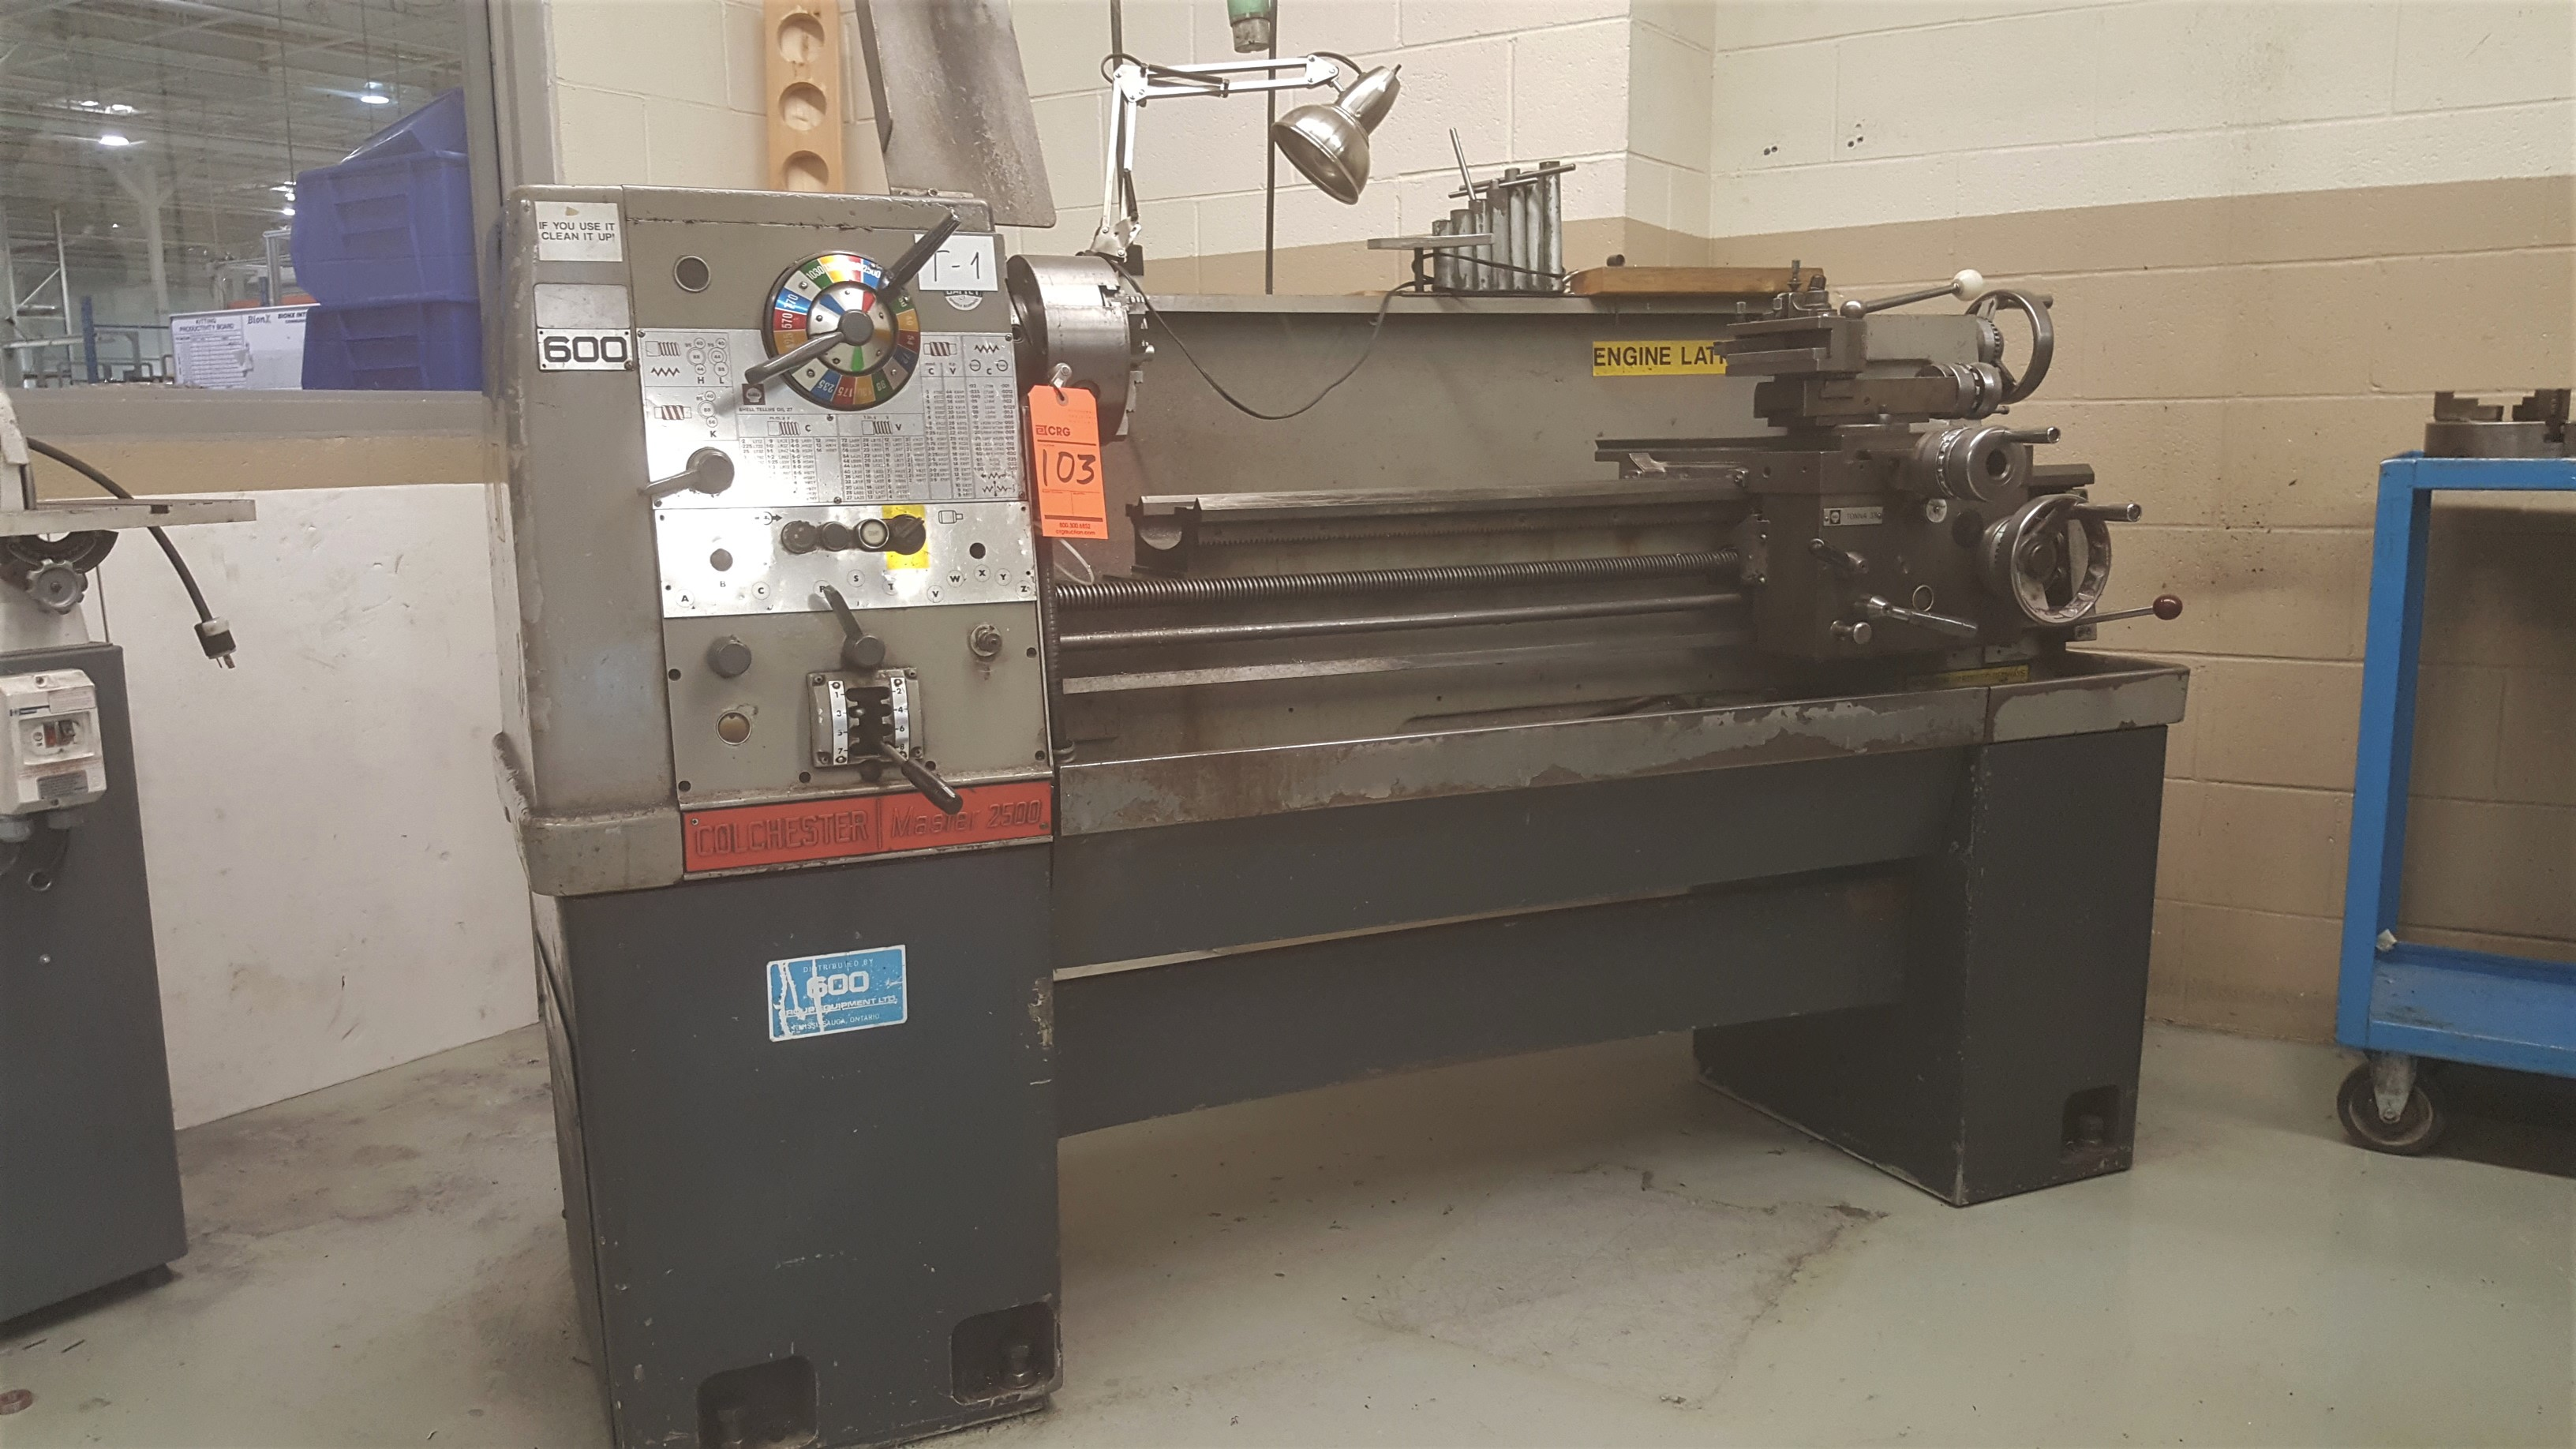 """Lot 103 - COLCHESTER Master 2500 engine lathe, 14"""" swing X 48"""" beween centers, 30 - 2500 RPM spindle speeds,"""